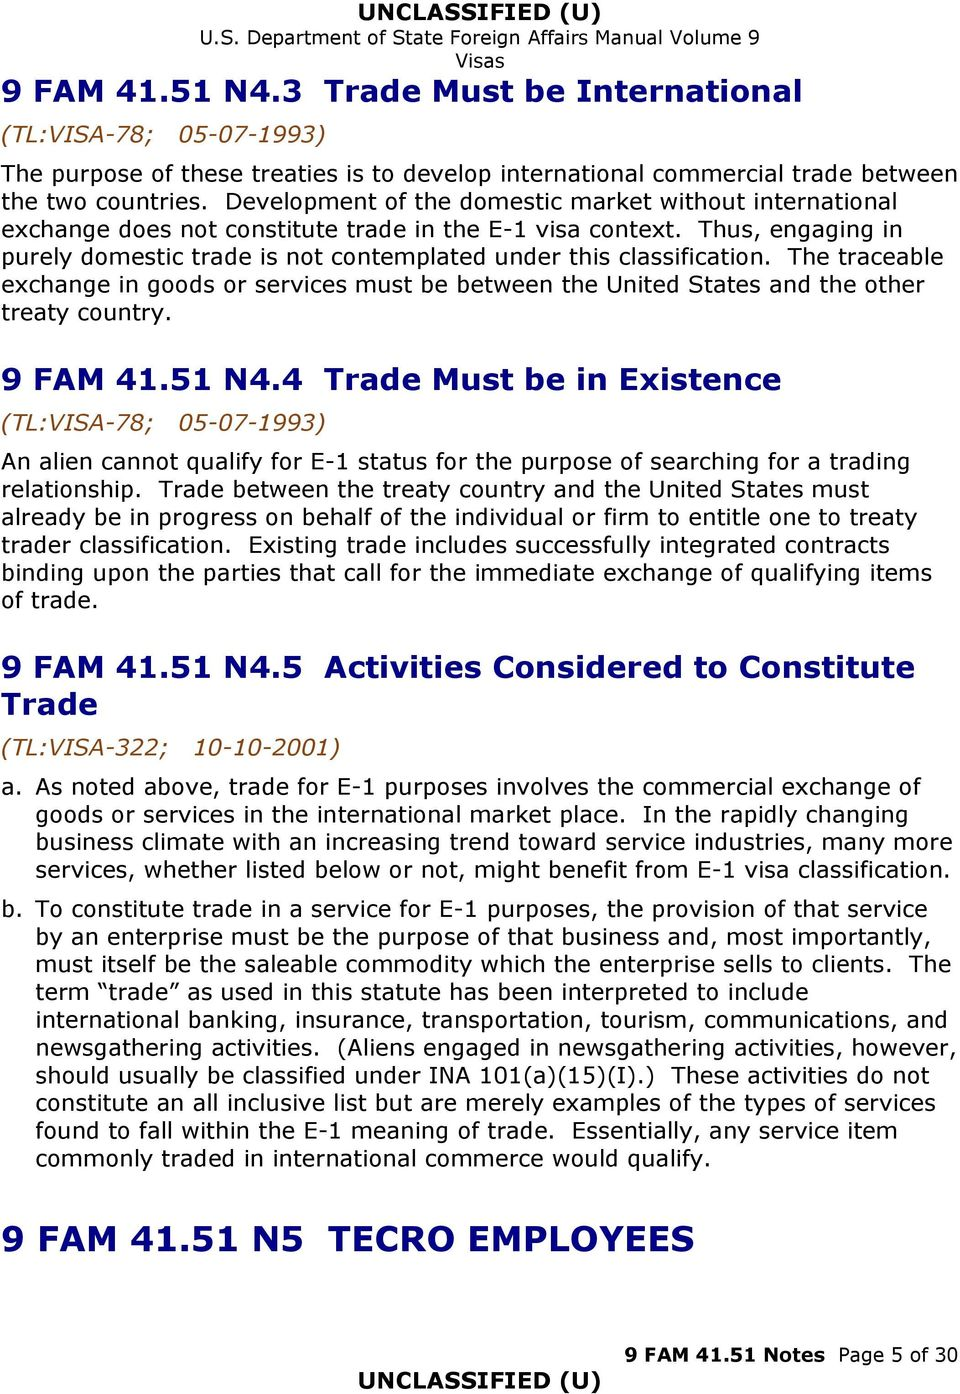 Thus, engaging in purely domestic trade is not contemplated under this classification. The traceable exchange in goods or services must be between the United States and the other treaty country.